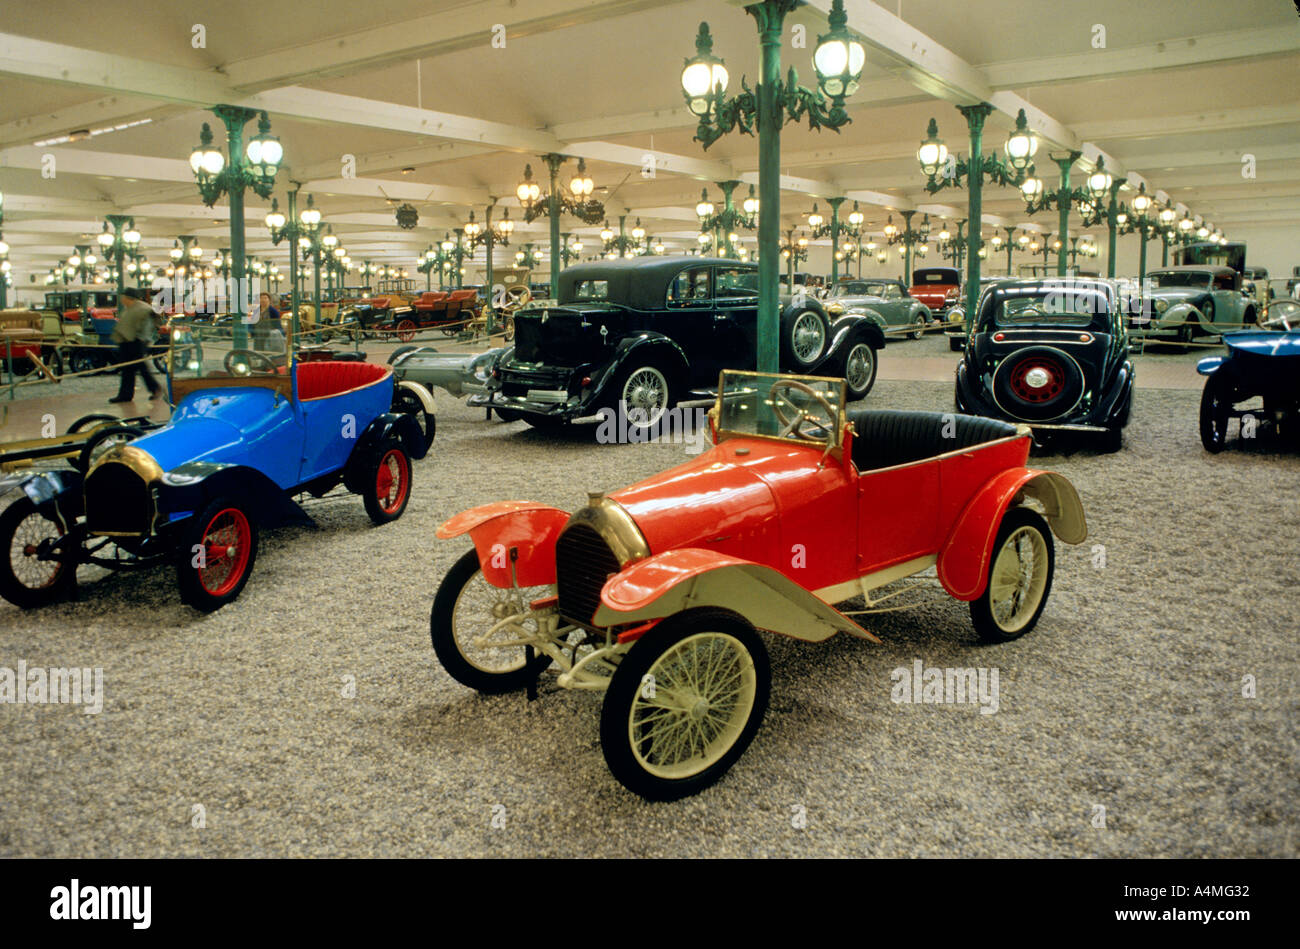 automobile museum in mulhouse alsace france stock photo royalty free image 3616817 alamy. Black Bedroom Furniture Sets. Home Design Ideas